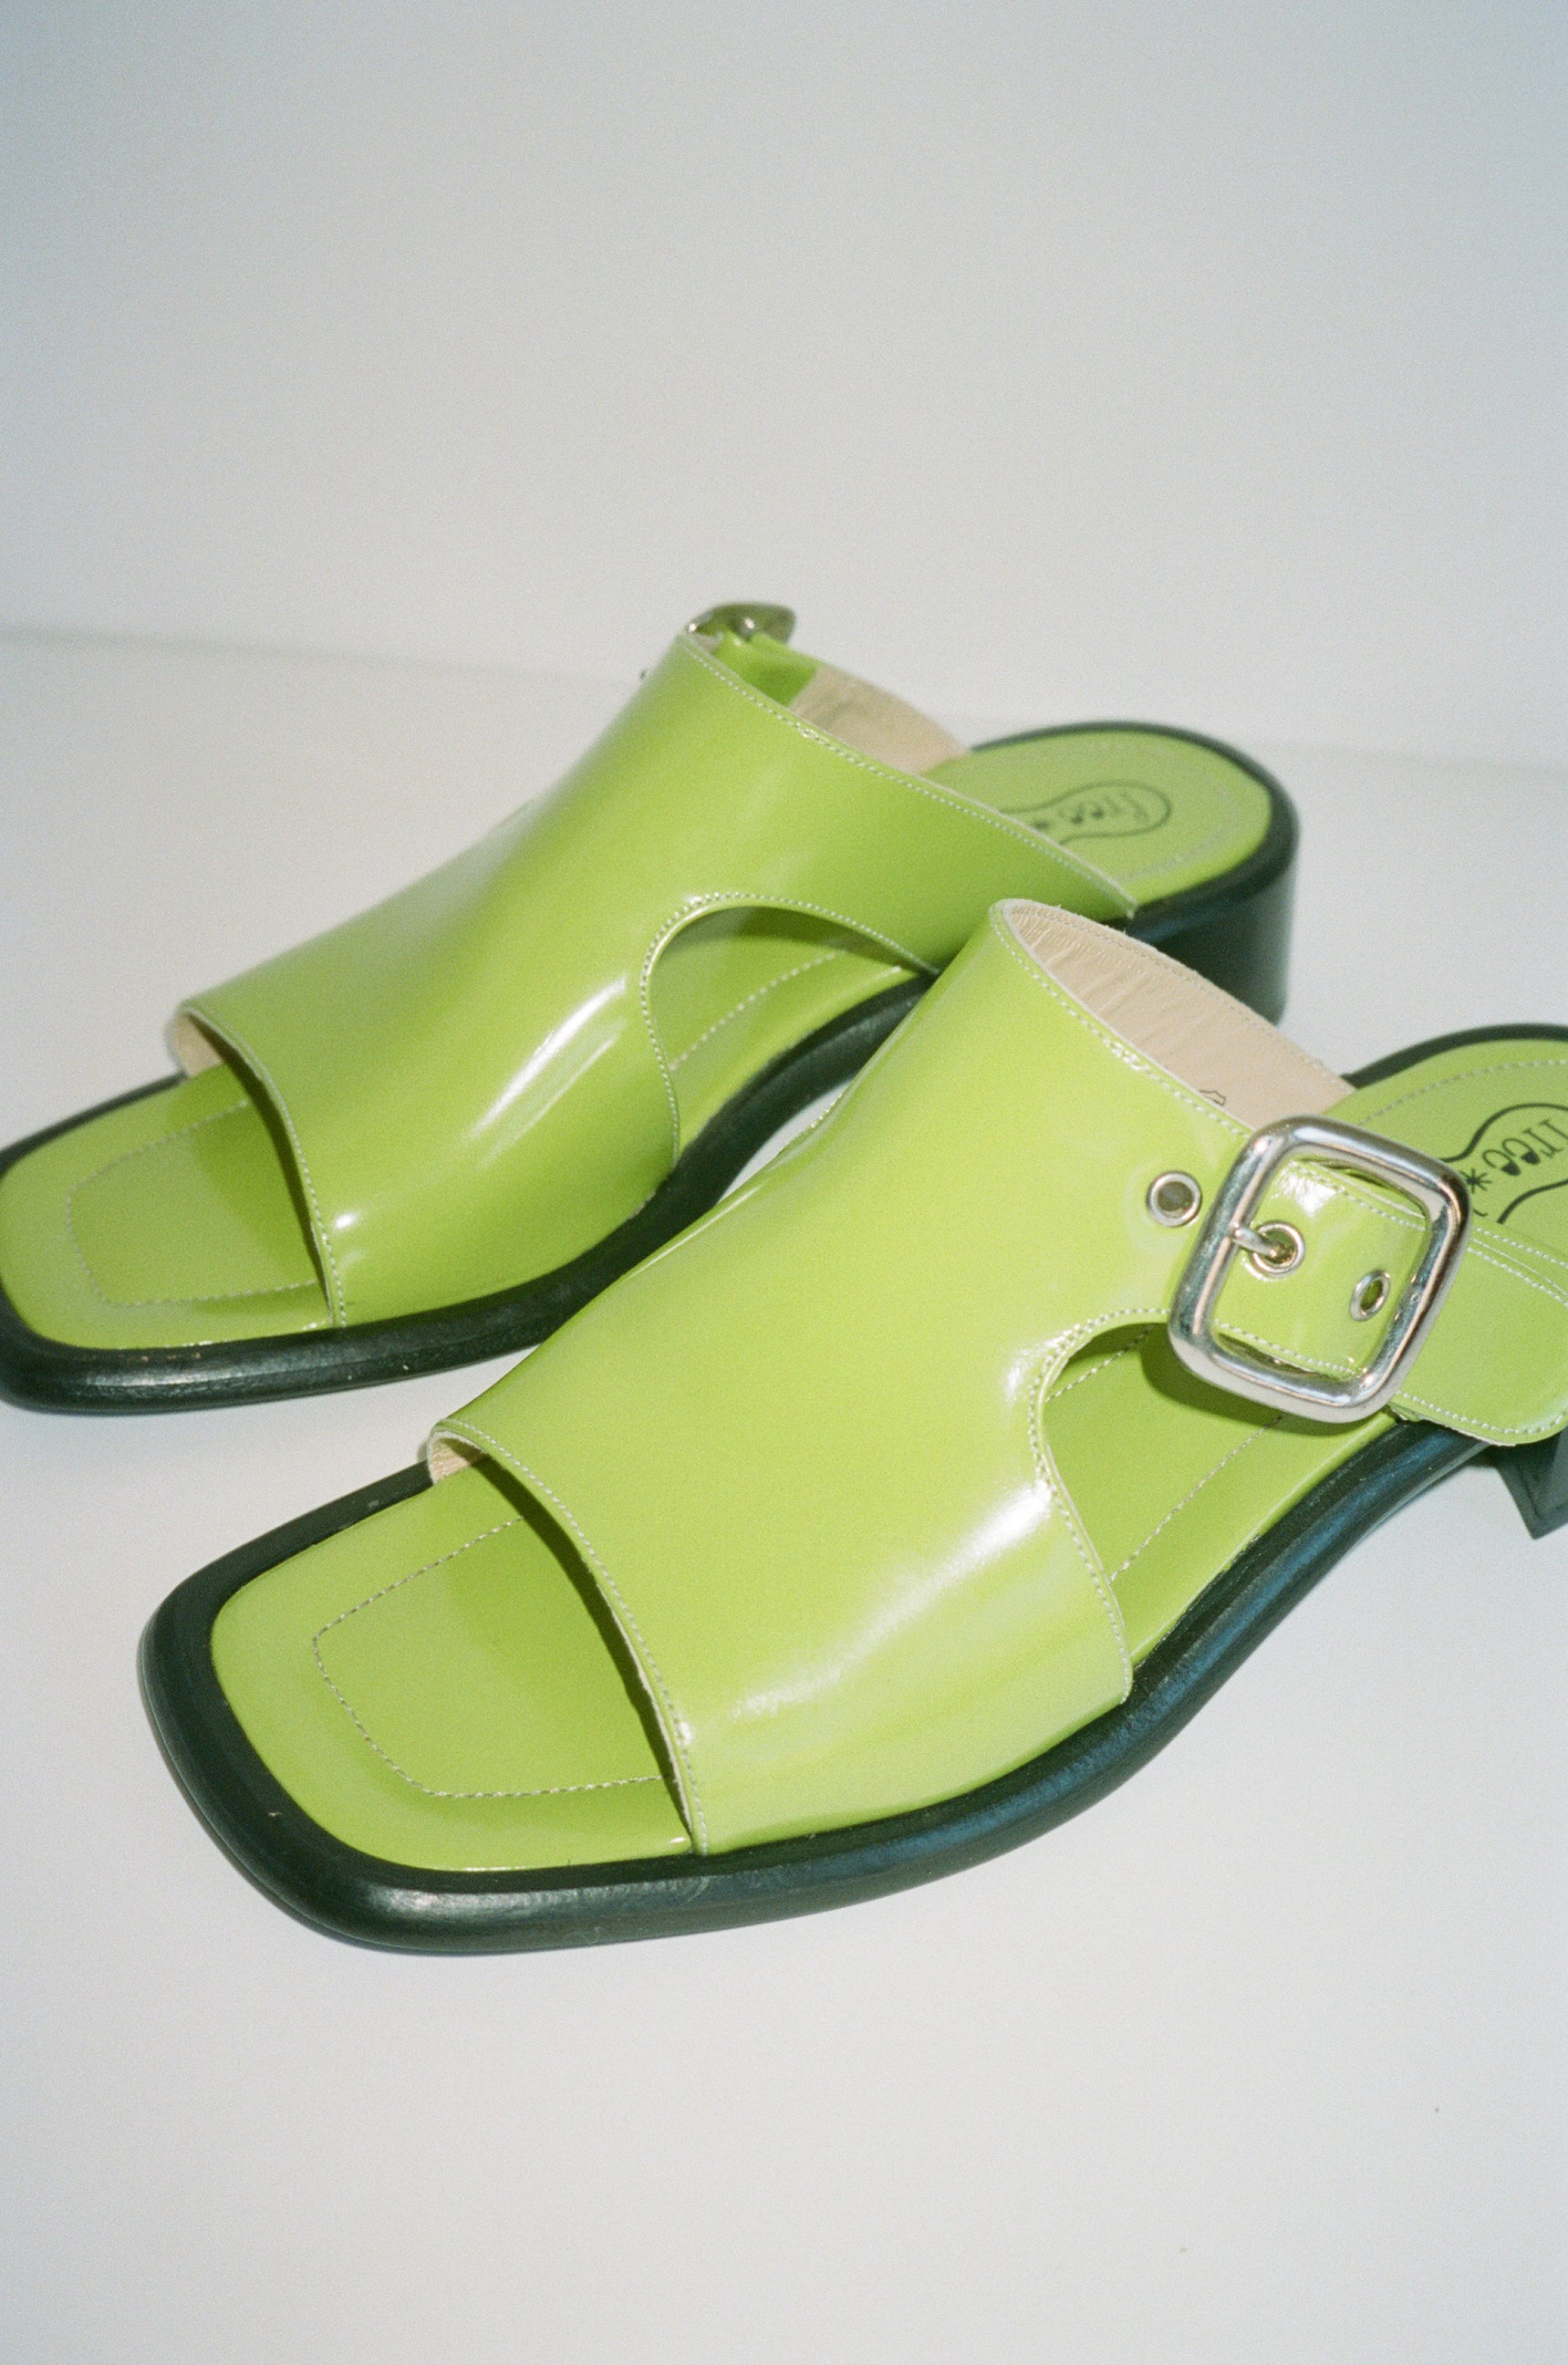 Freelance Green Sandals sz 7.5